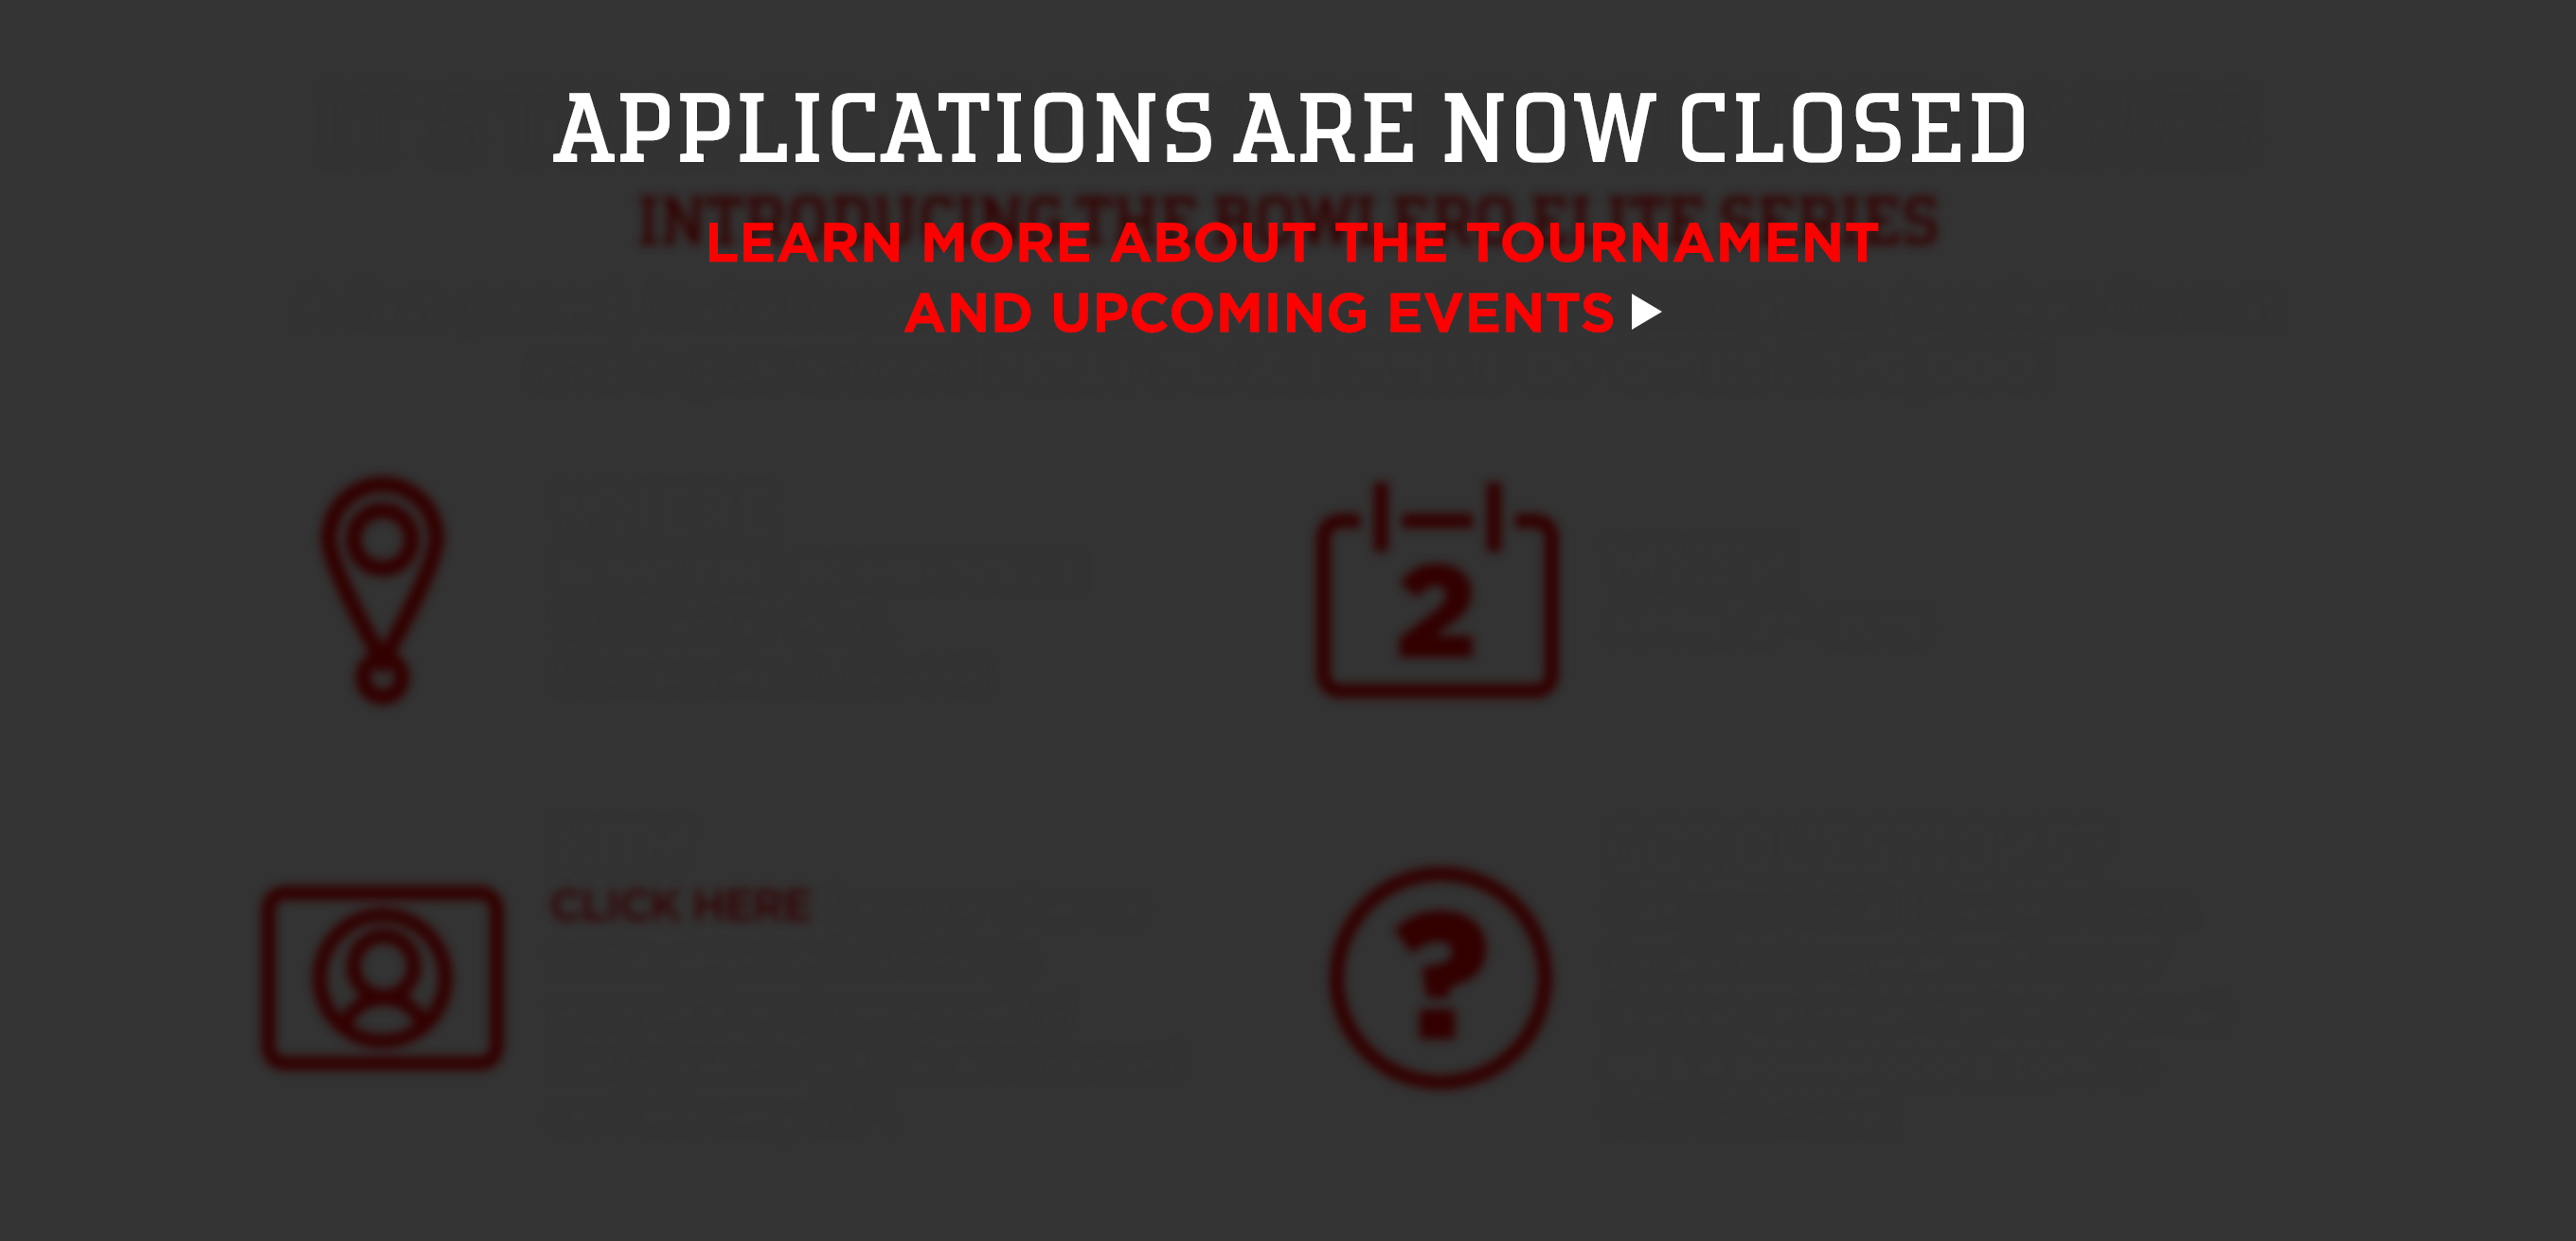 text: applications are now closed. learn more about the tournament and upcoming events.